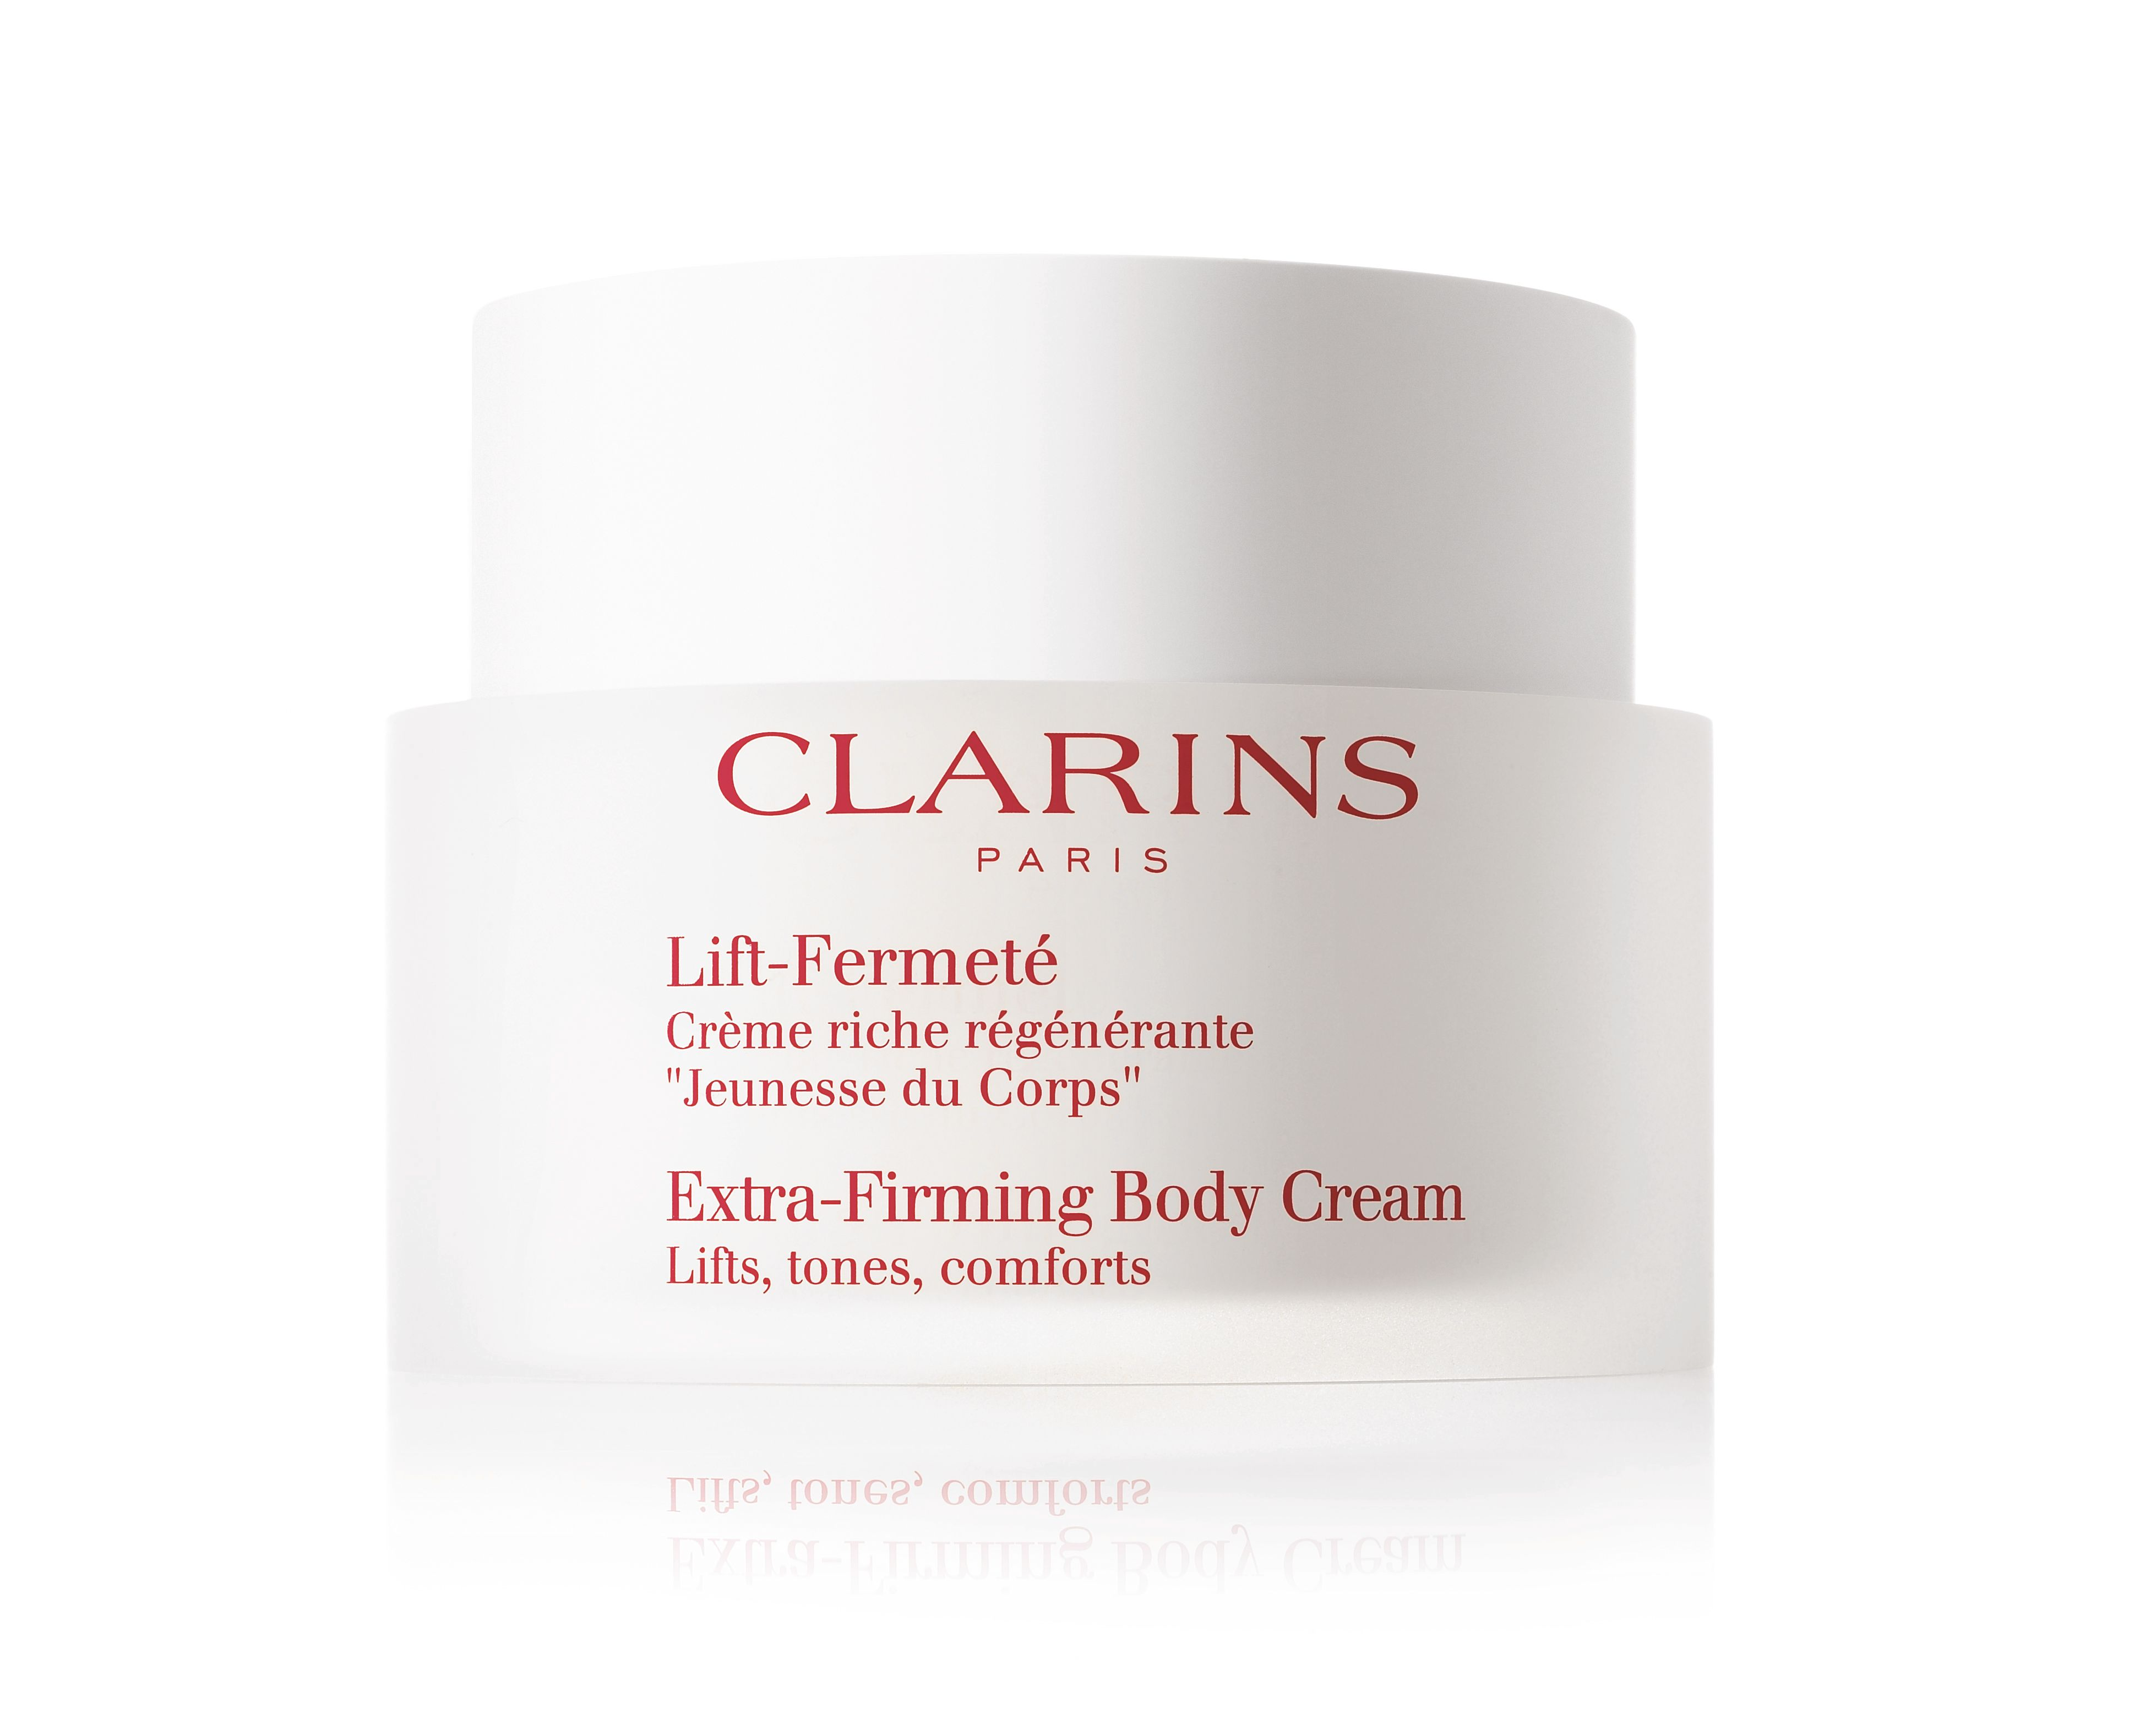 buy cheap clarins body cream compare skincare prices for best uk deals. Black Bedroom Furniture Sets. Home Design Ideas